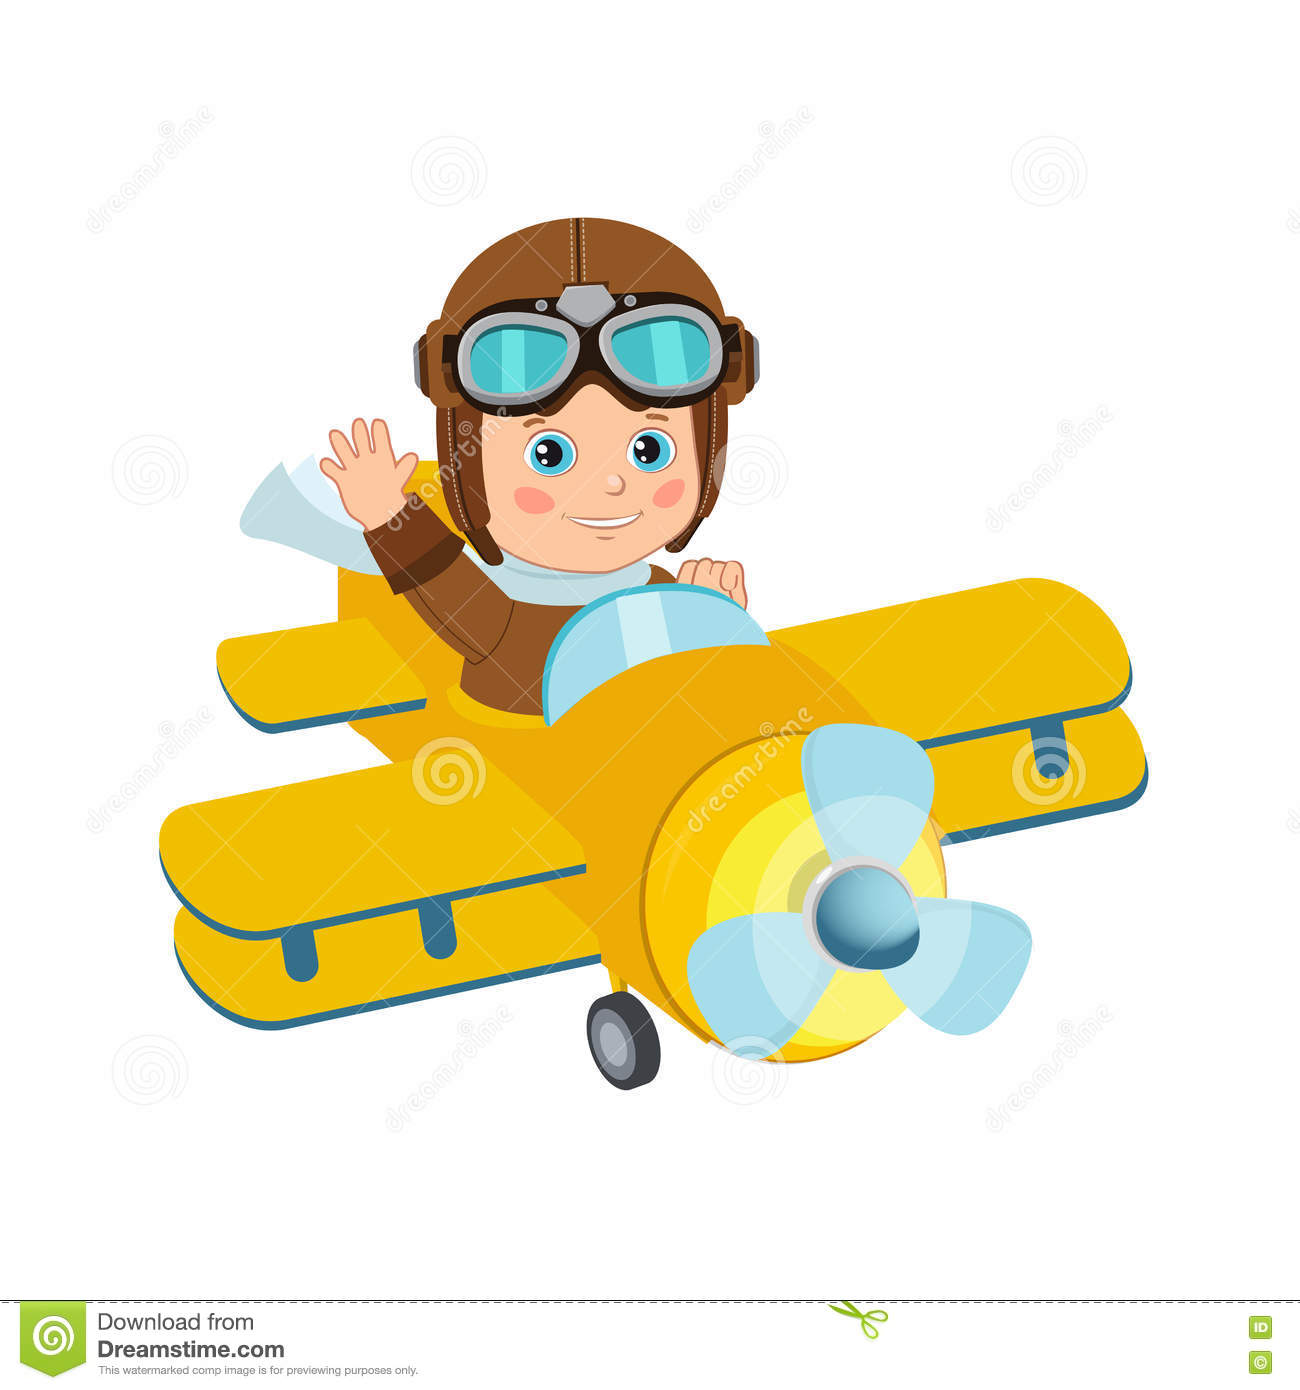 rc plane prices with Stock Illustration Cute Boy Pilot Flies Airplane Tor Retro Boy Pilot Isolated White Background Boy Pilot Costume Baby Boy Pilot Hat Cartoon Image81449932 on E Volo Personal Helicopter furthermore Royalty Free Stock Images Rc Plane Radio Remote Control Isolated White Background Image34514509 together with The 17million Yacht  es Supercar Quick Going Them besides Royalty Free Stock Photo Stage Light Image20093605 as well 2013 Mustang gt.